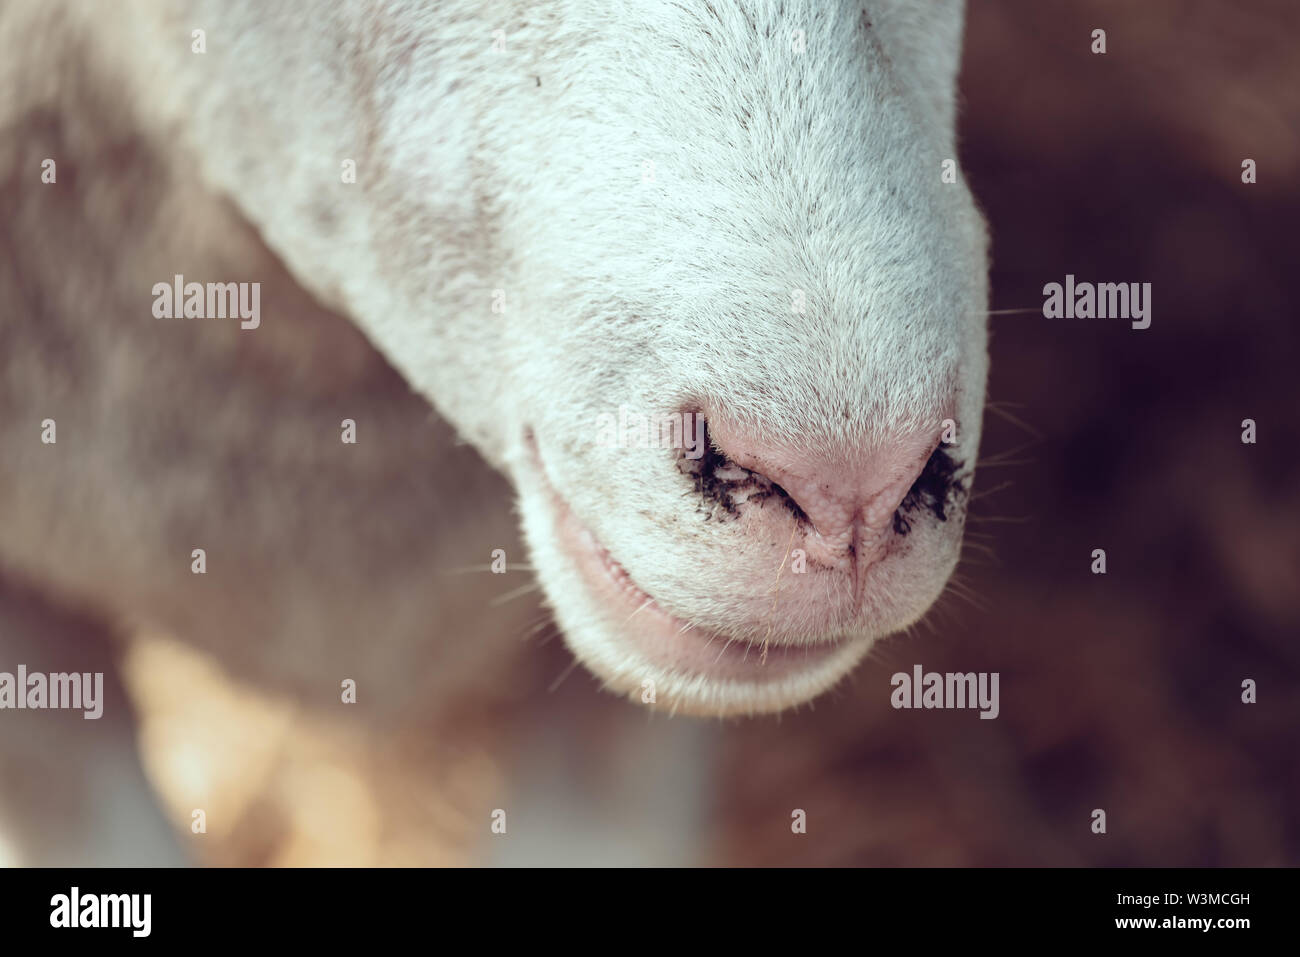 Ile de France sheep nose close up in pen on livestock farm, domestic animals husbandry concept - Stock Image